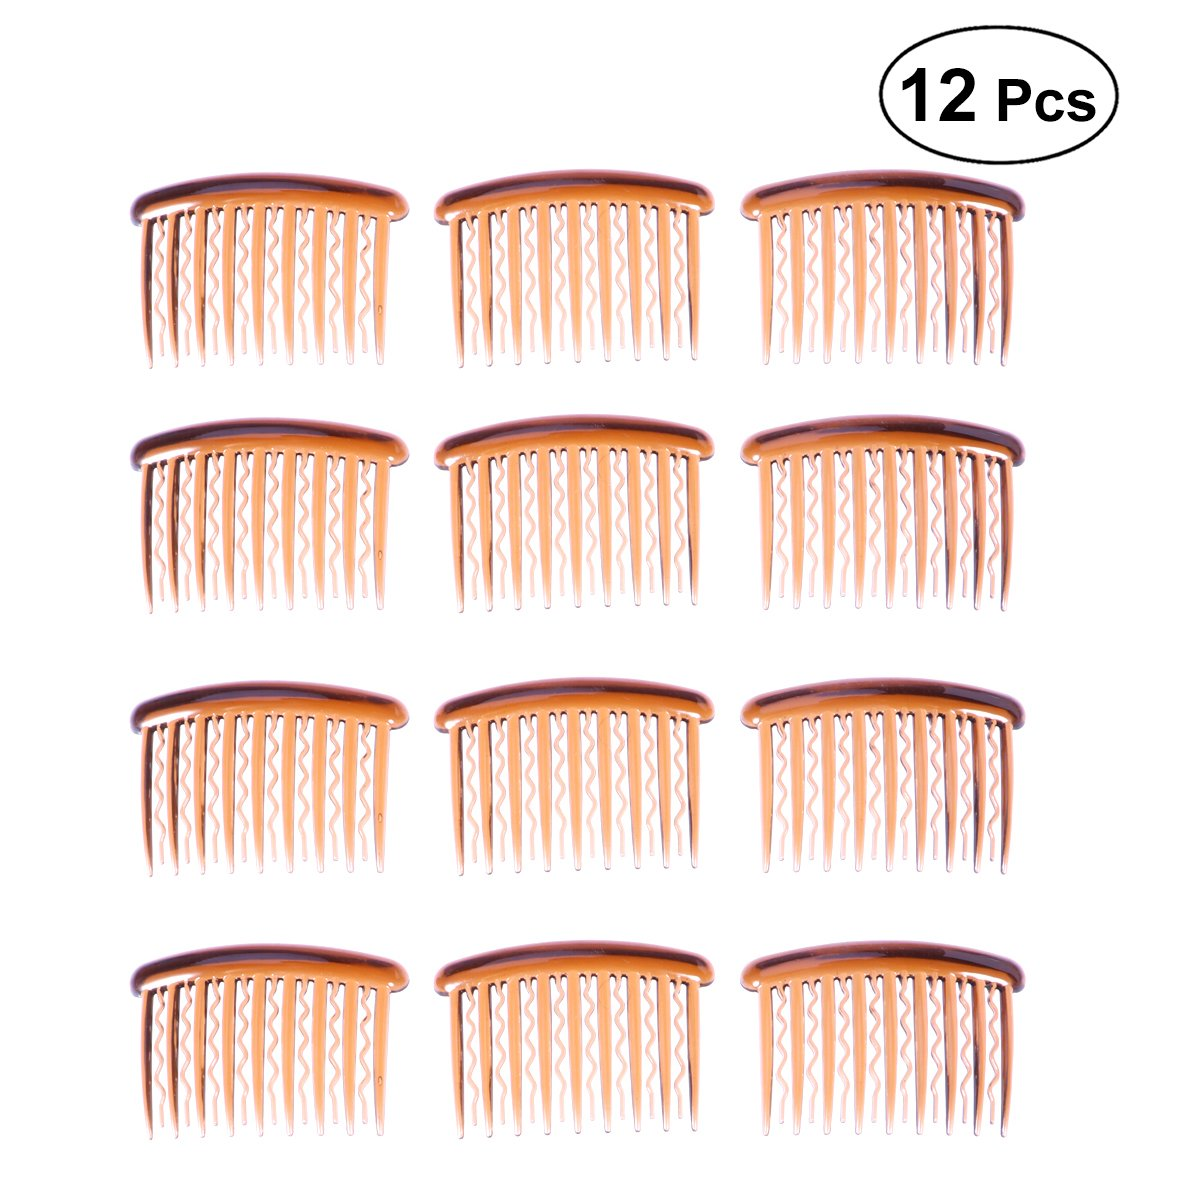 Frcolor Plastic Hair Clip Combs,17 Teeth Hair Side Comb for Fine Hair(12Pcs)